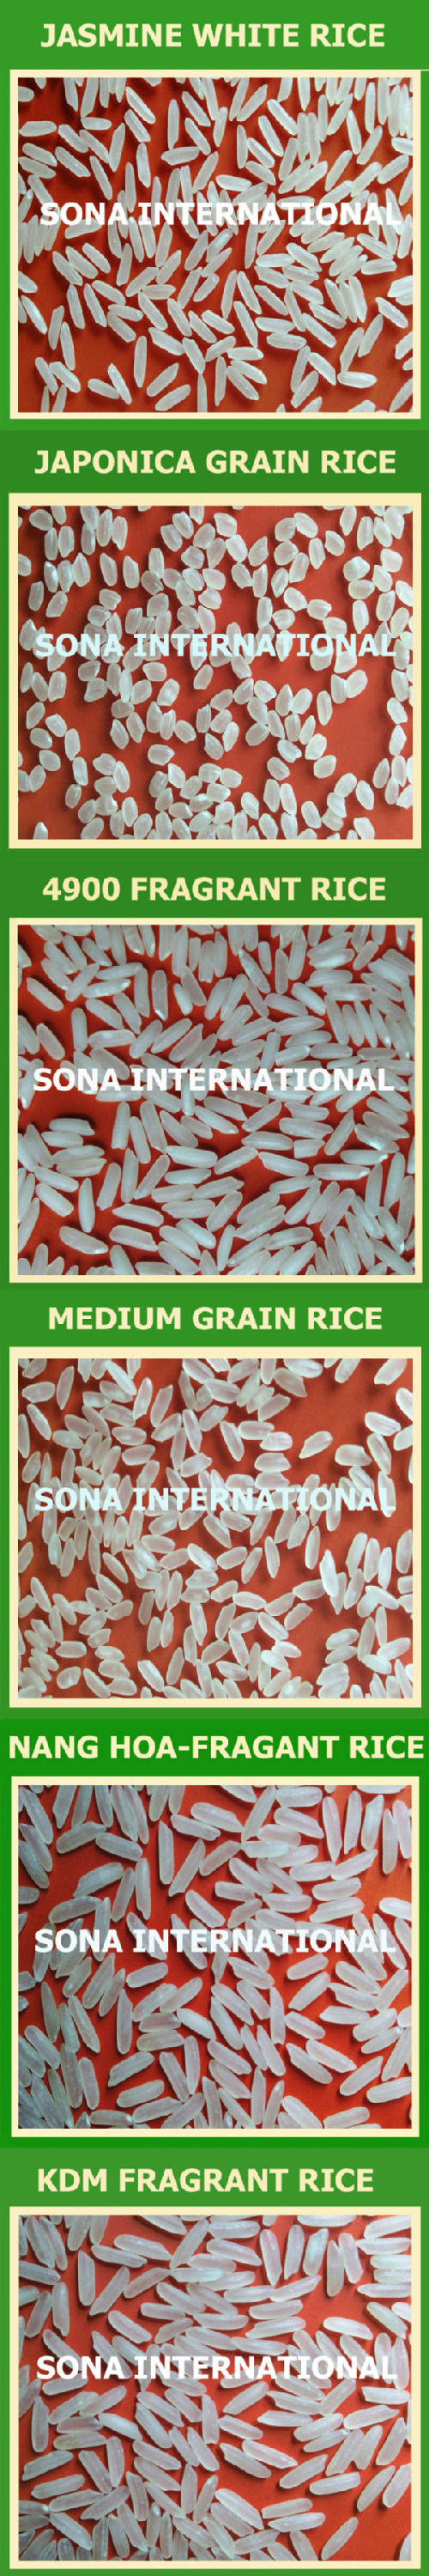 INFO@VINARICE.VN - Long white rice 5% - 100% broken